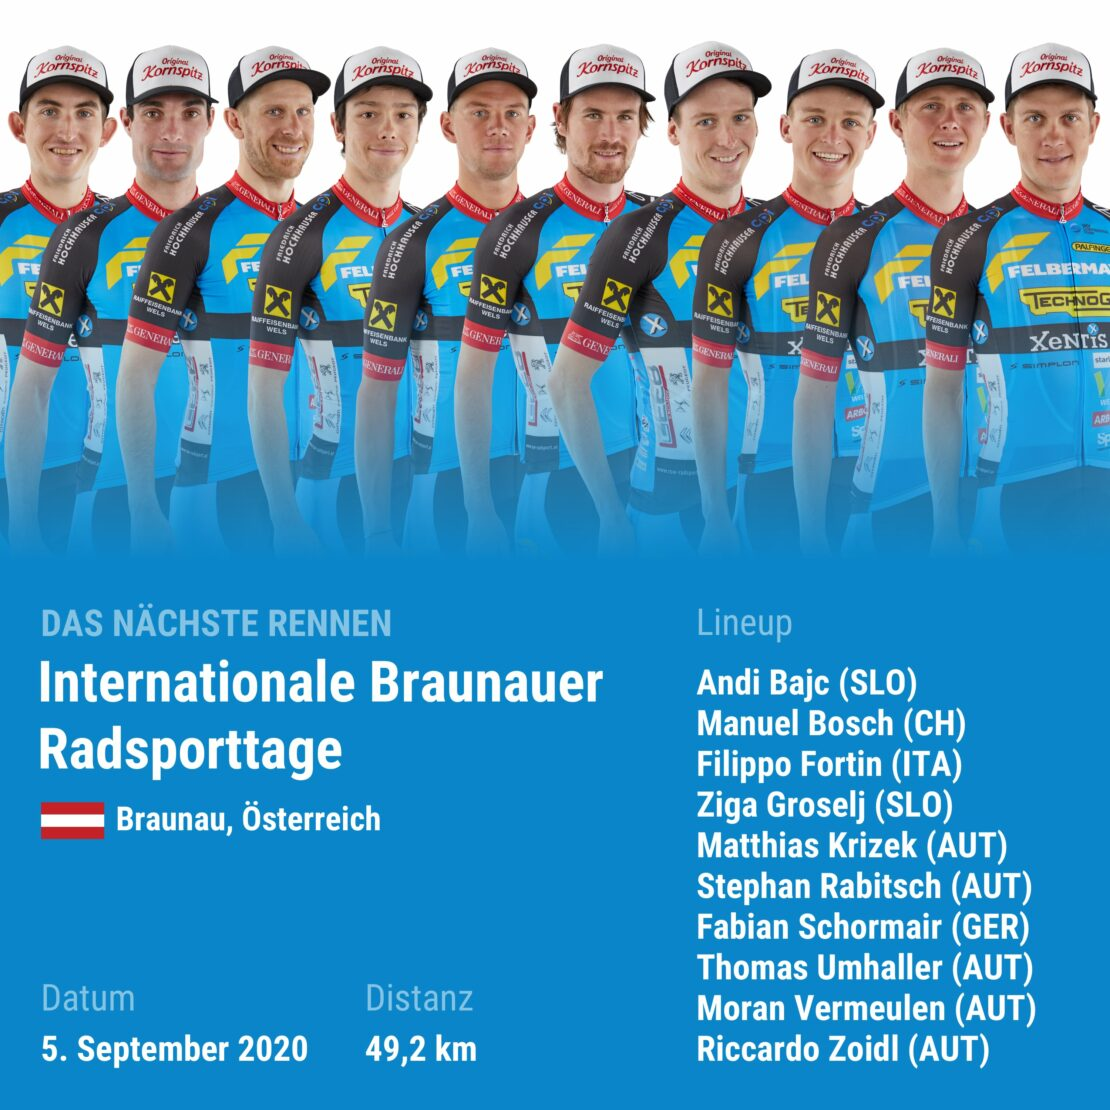 21.internationale Brauner Radsporttage